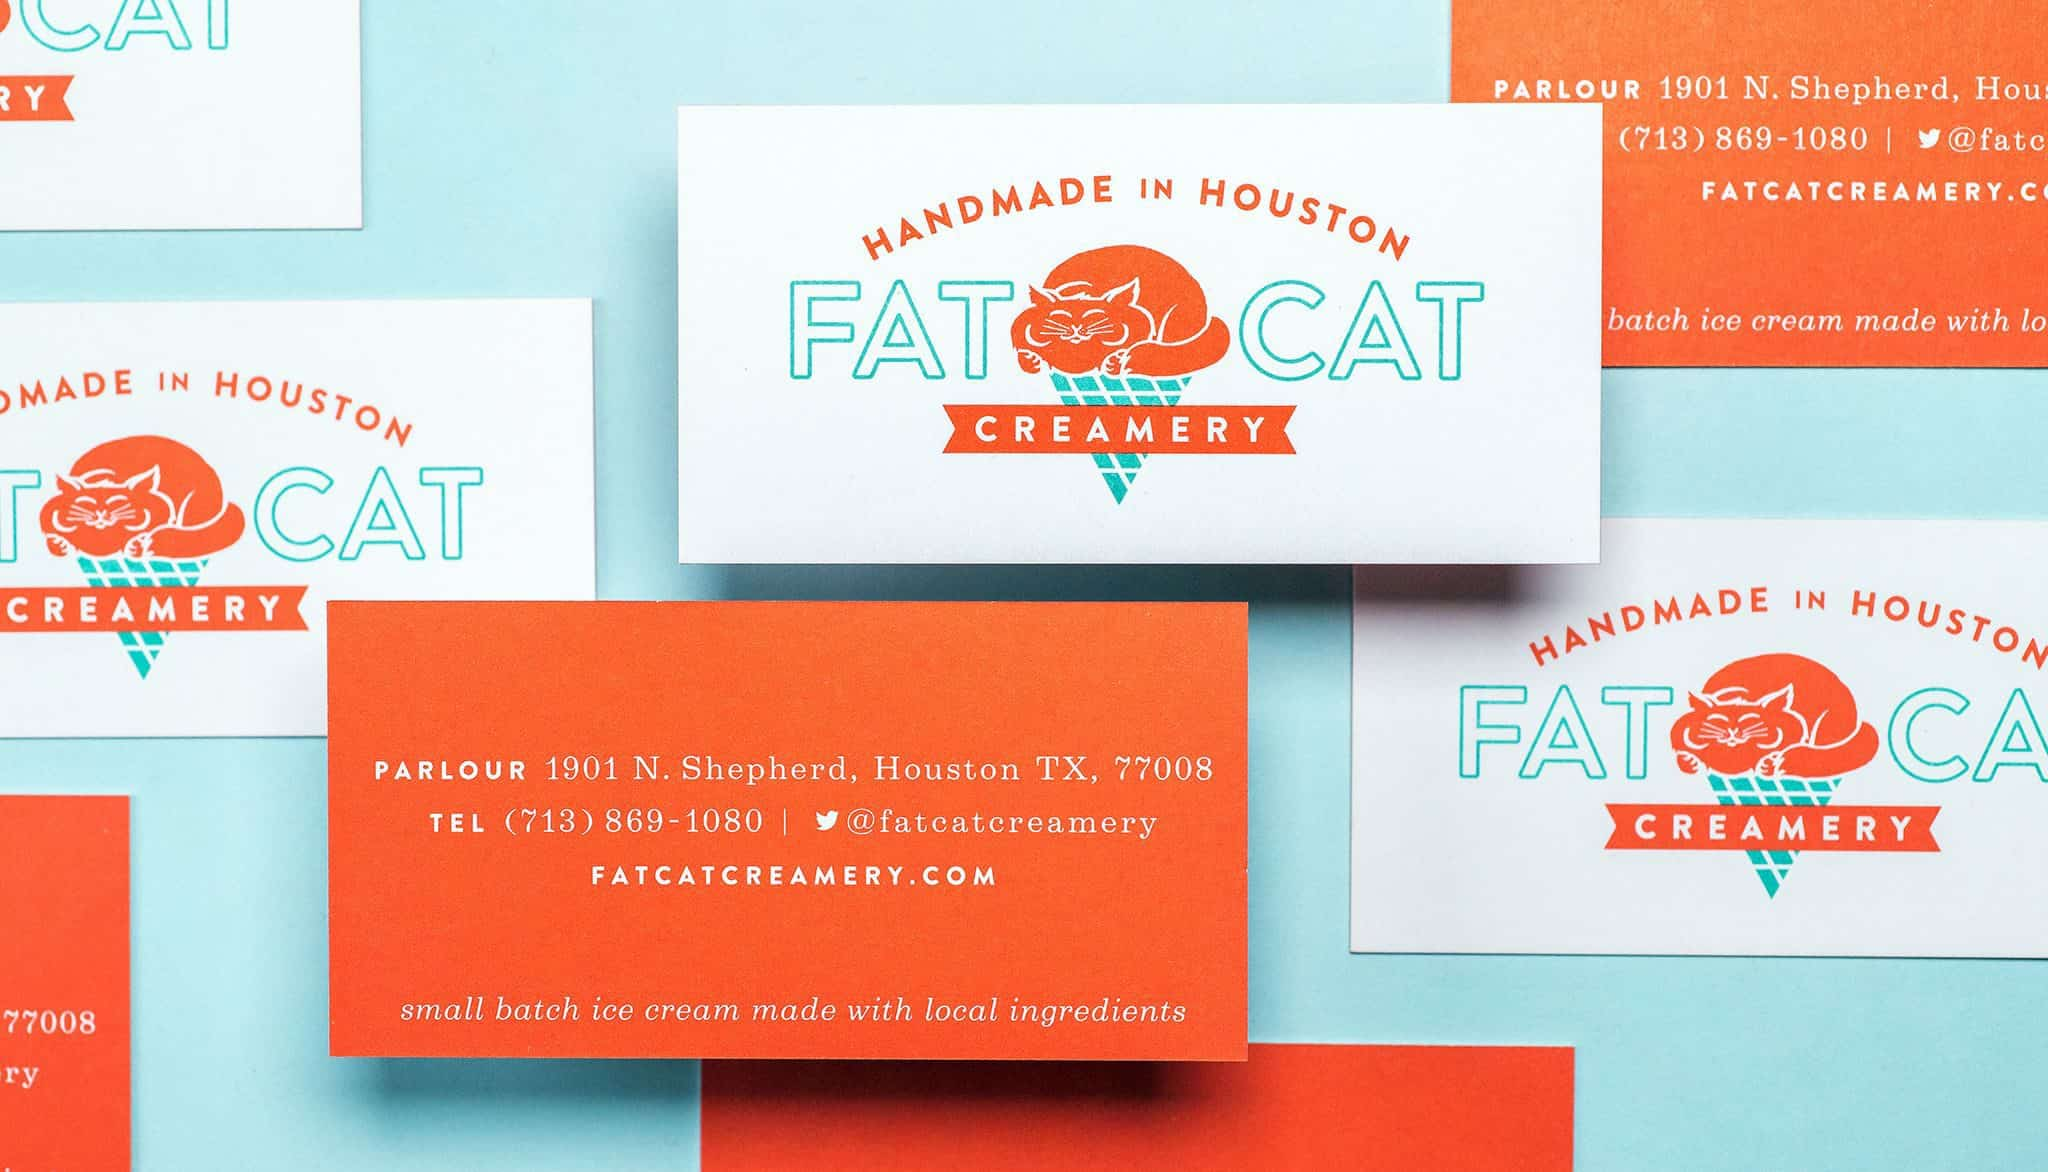 Business card and stationery for Fat Cat Creamery | Designed by Field of Study: A branding and graphic design consultancy | Houston TX | Jennifer Blanco & John Earles